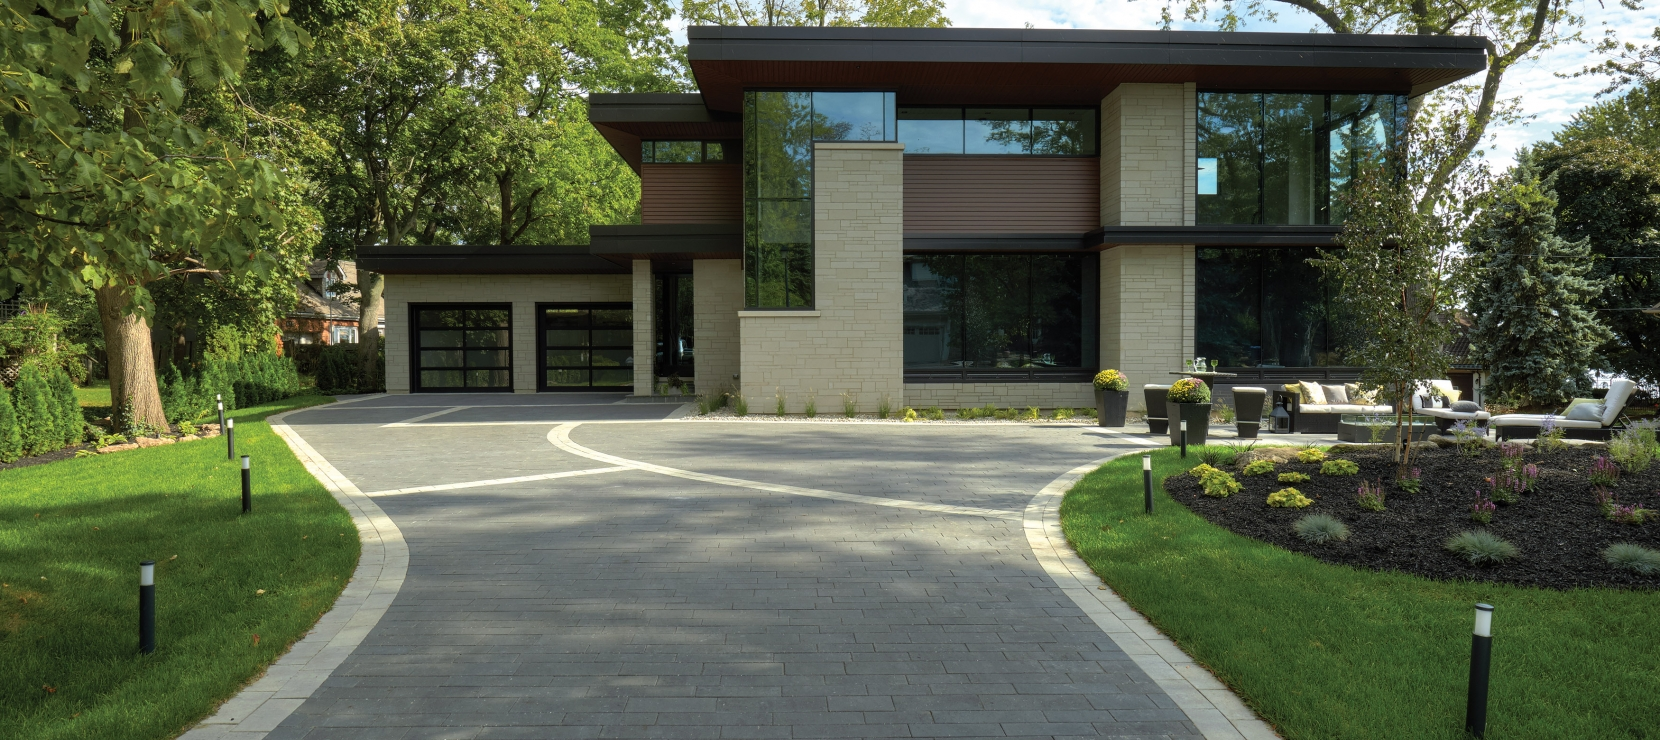 House with driveway using Presidio and Contempo products from Brampton Brick